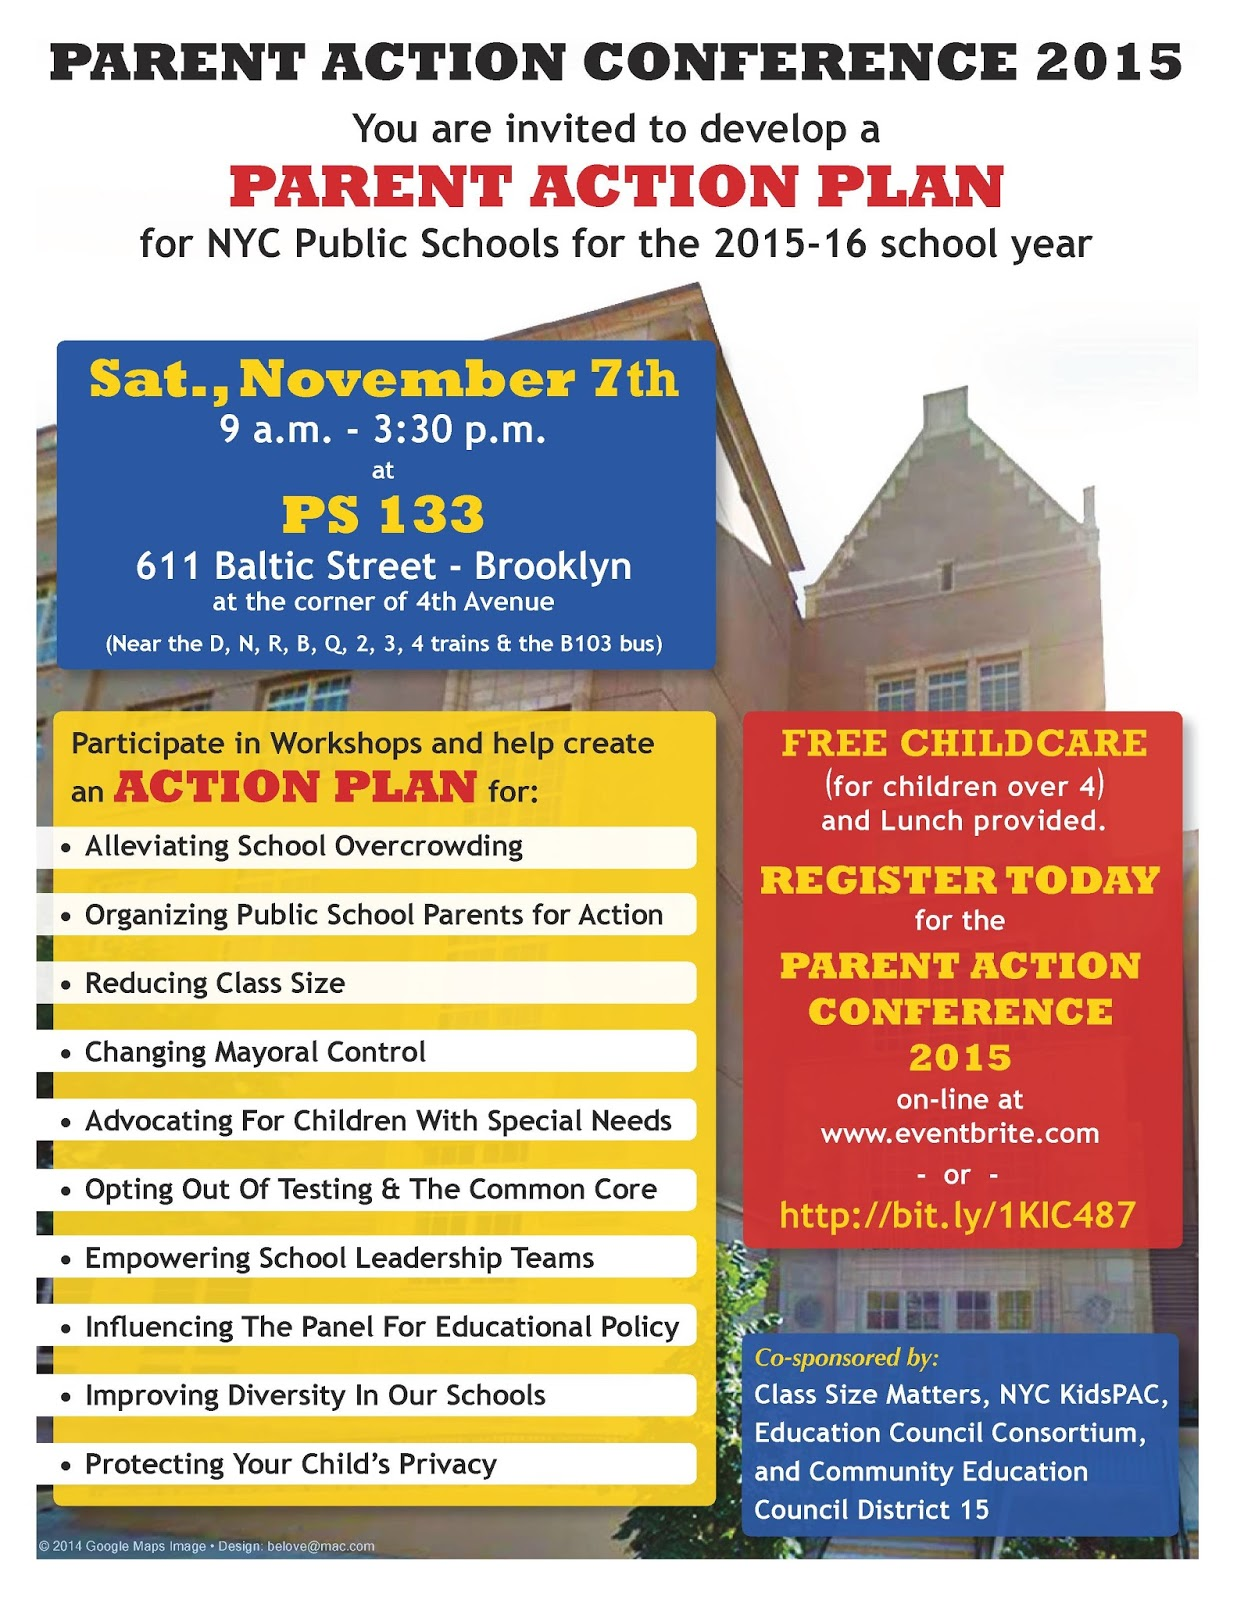 Sign up for our Parent Action Conference today!